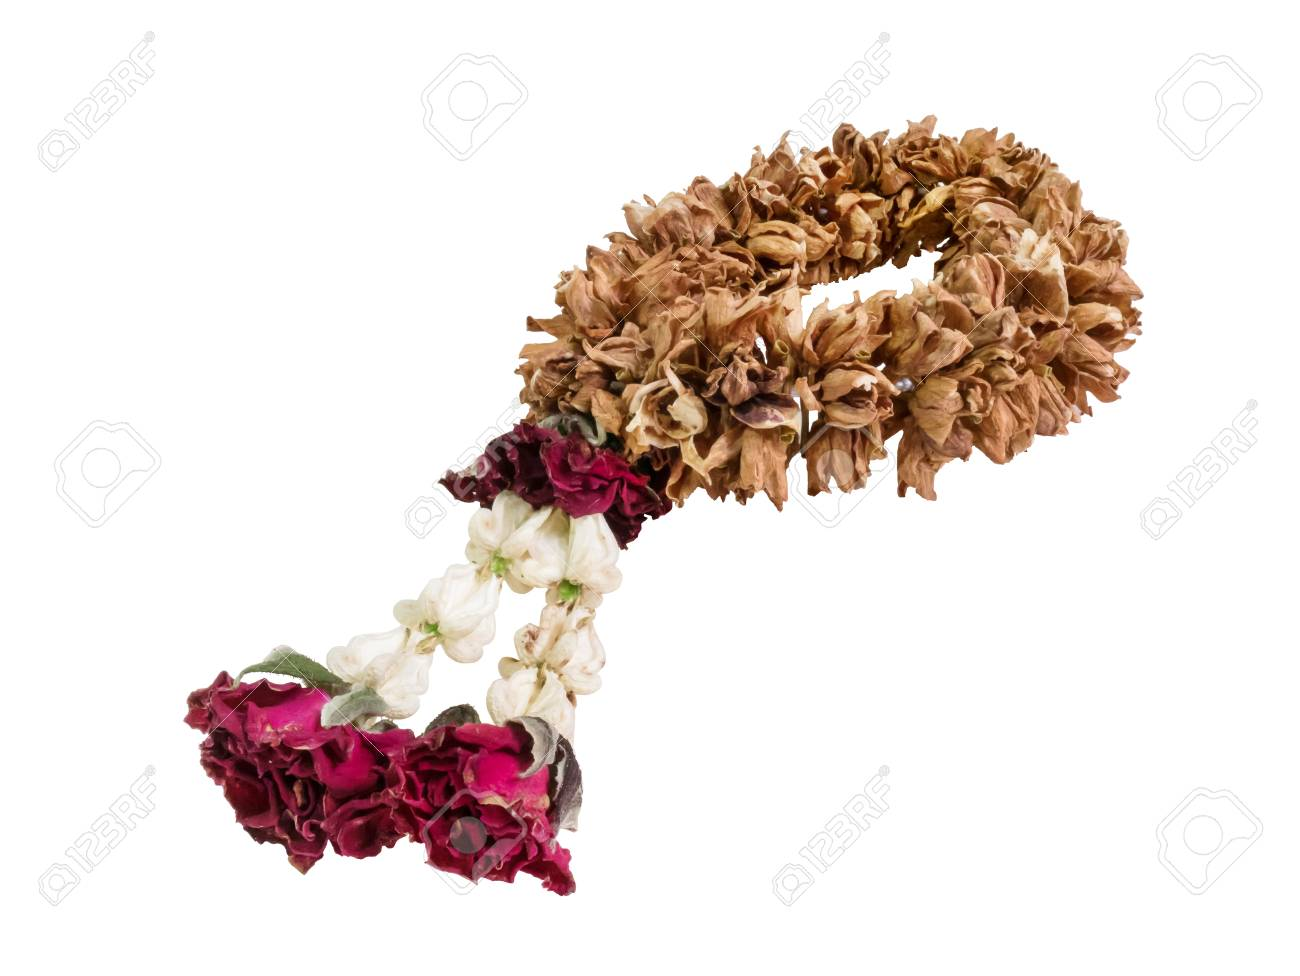 Dry Flower Garland Isolated On White Background Stock Photo, Picture ...